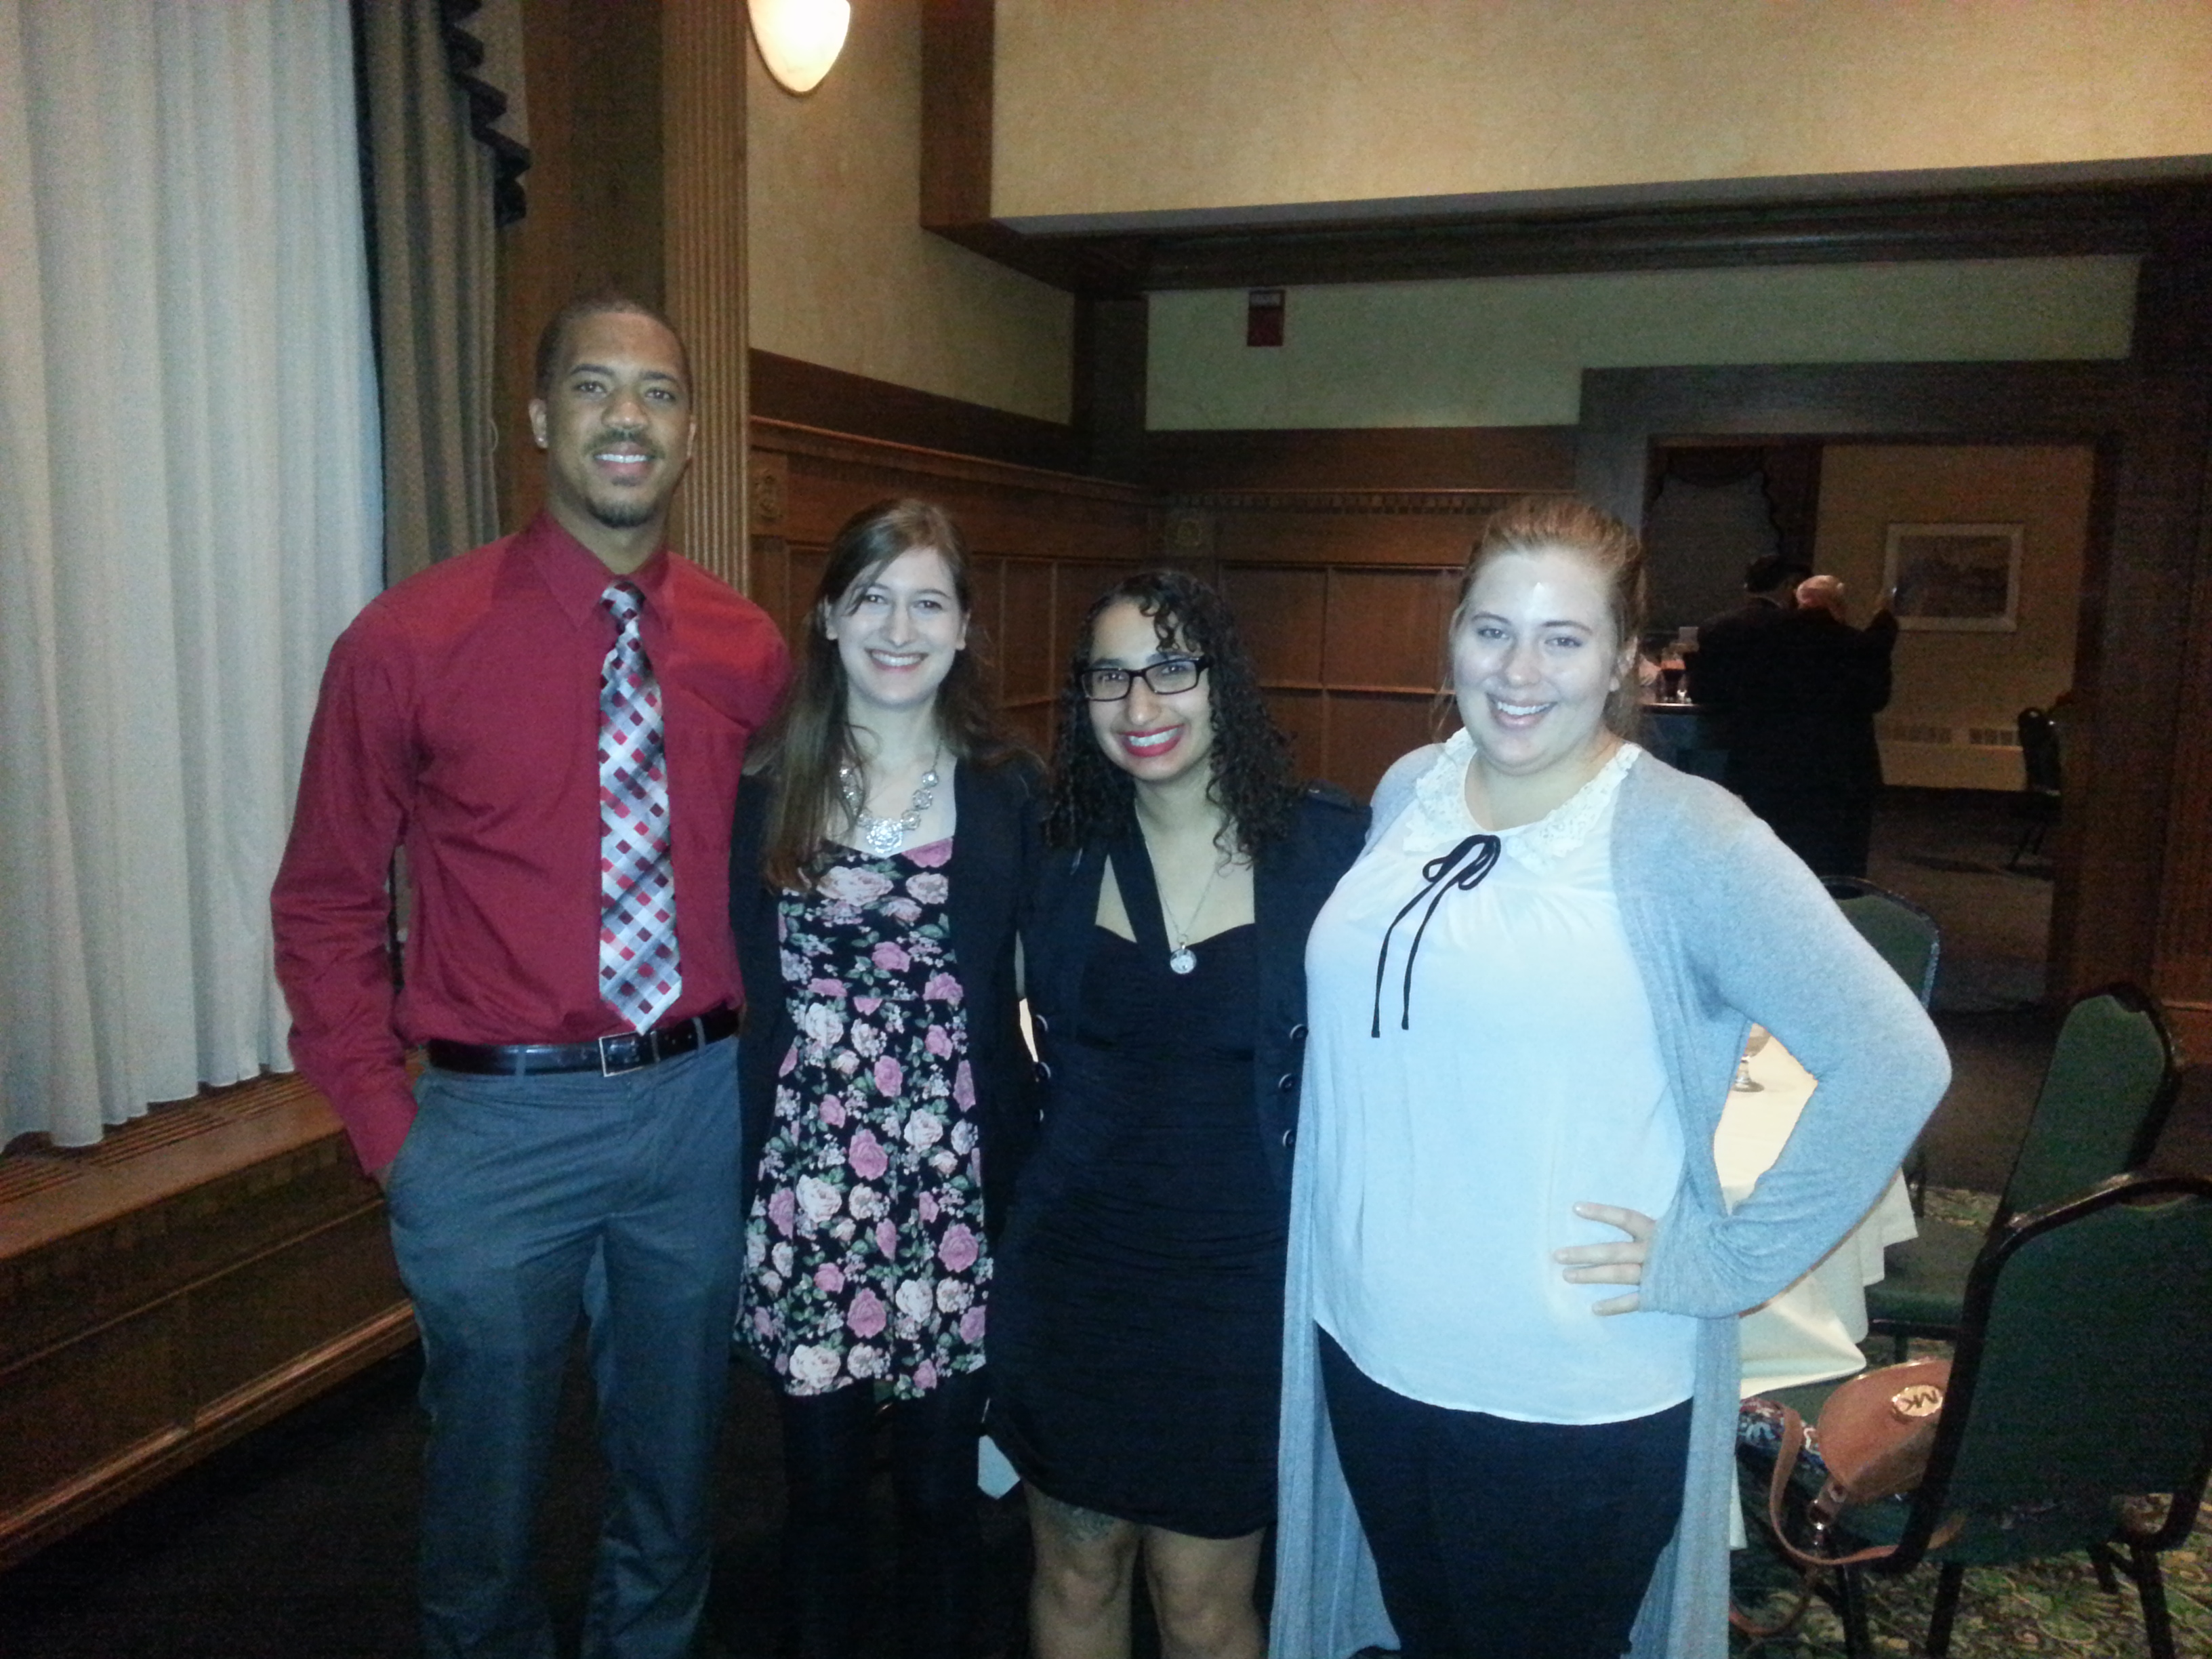 """Bowling Green students Aaron Parker, Annie Furia, Erica Heck and Hannah Benson represented the University at the Oct. 8 Press Club of Toledo Touchstone Awards. Annie Furia was the recipient of a $1,000 Bernard Judy Scholarship as well as being a nominee for a Touchstone award in student journalism. 2015 graduate William Channell won the Excellence in Journalsim Award-- Student Print for his article, """"City of Toledo revitalizes polluted areas, buildings,"""" which focused on regional efforts to clean up a wide variety of contaminated brownfield sites that exist in the area."""